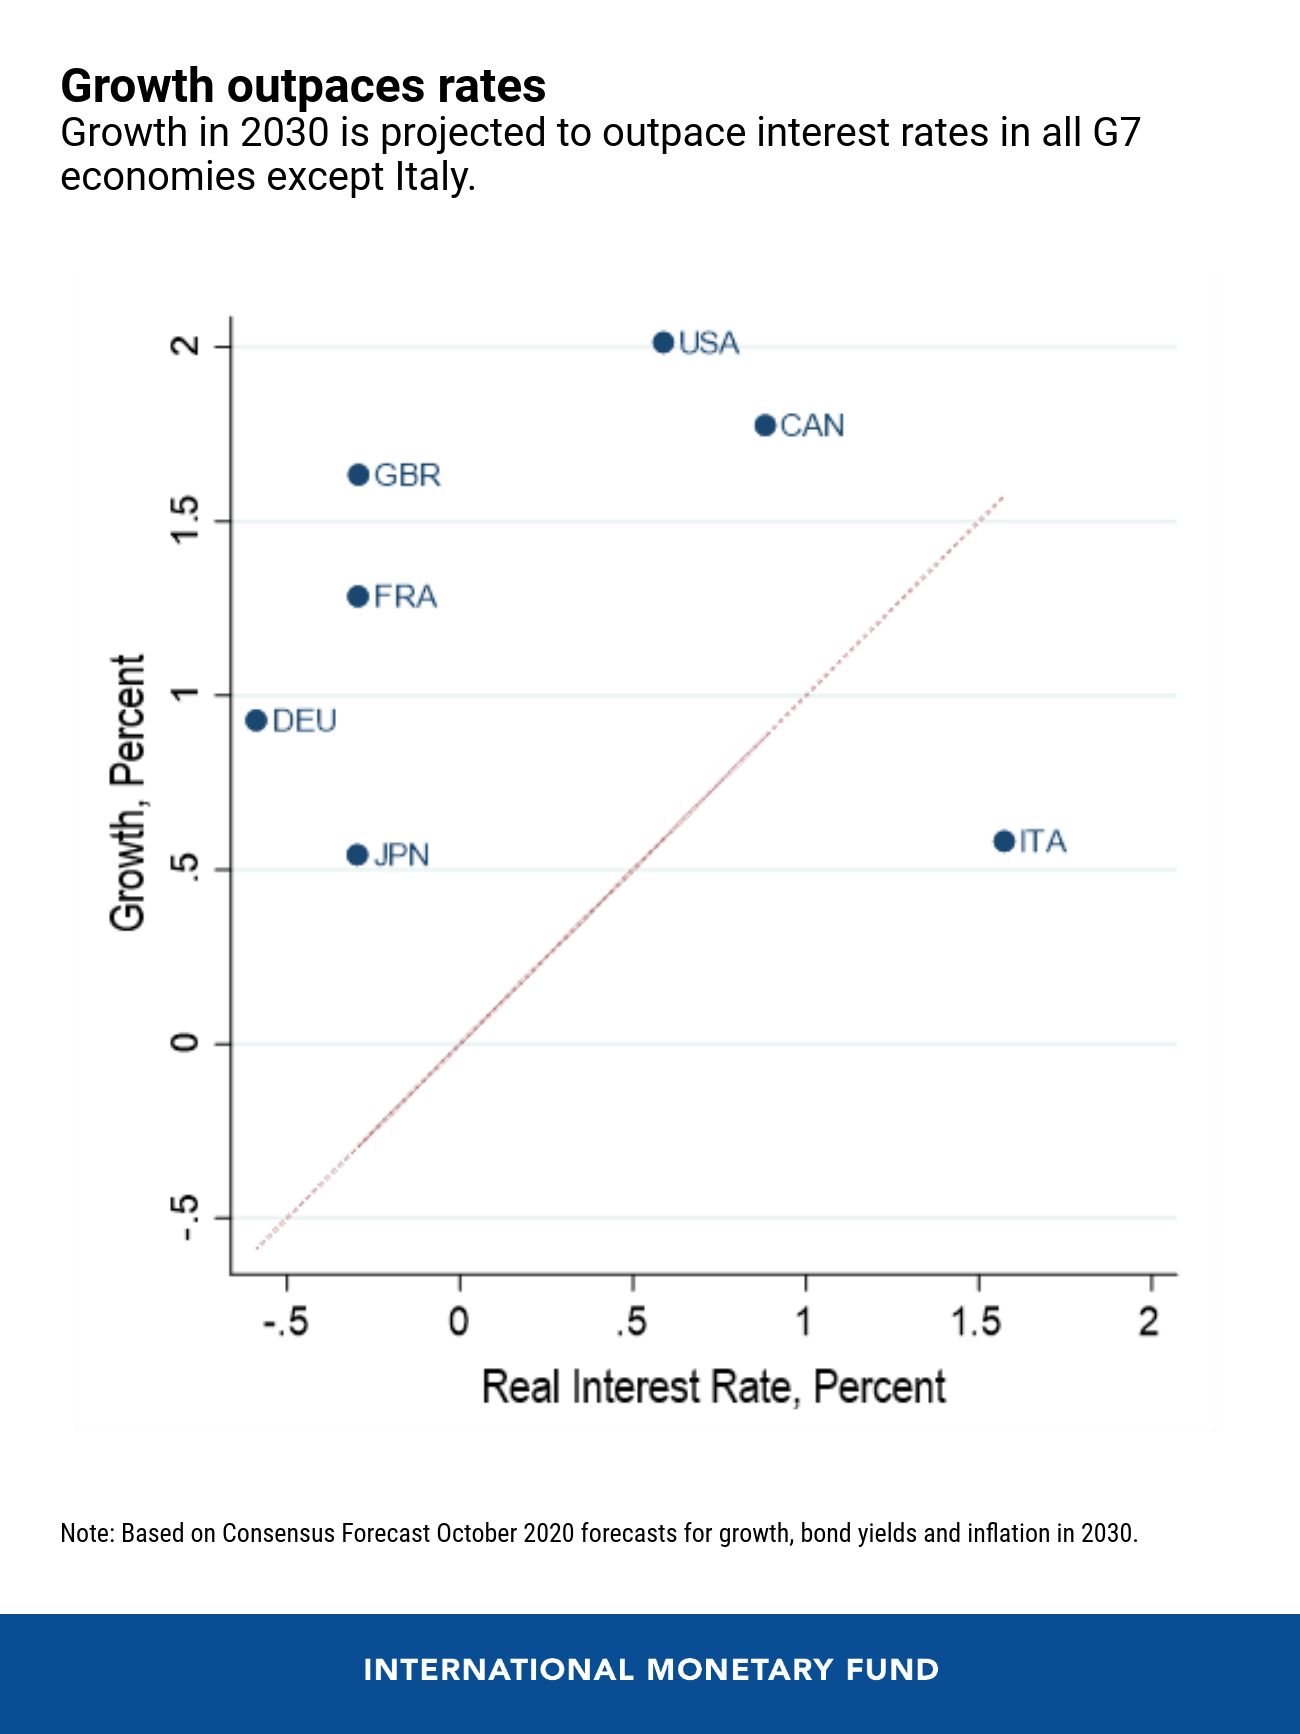 Growth in 2030 is projected to outpace interest rates in all G7 economies except Italy